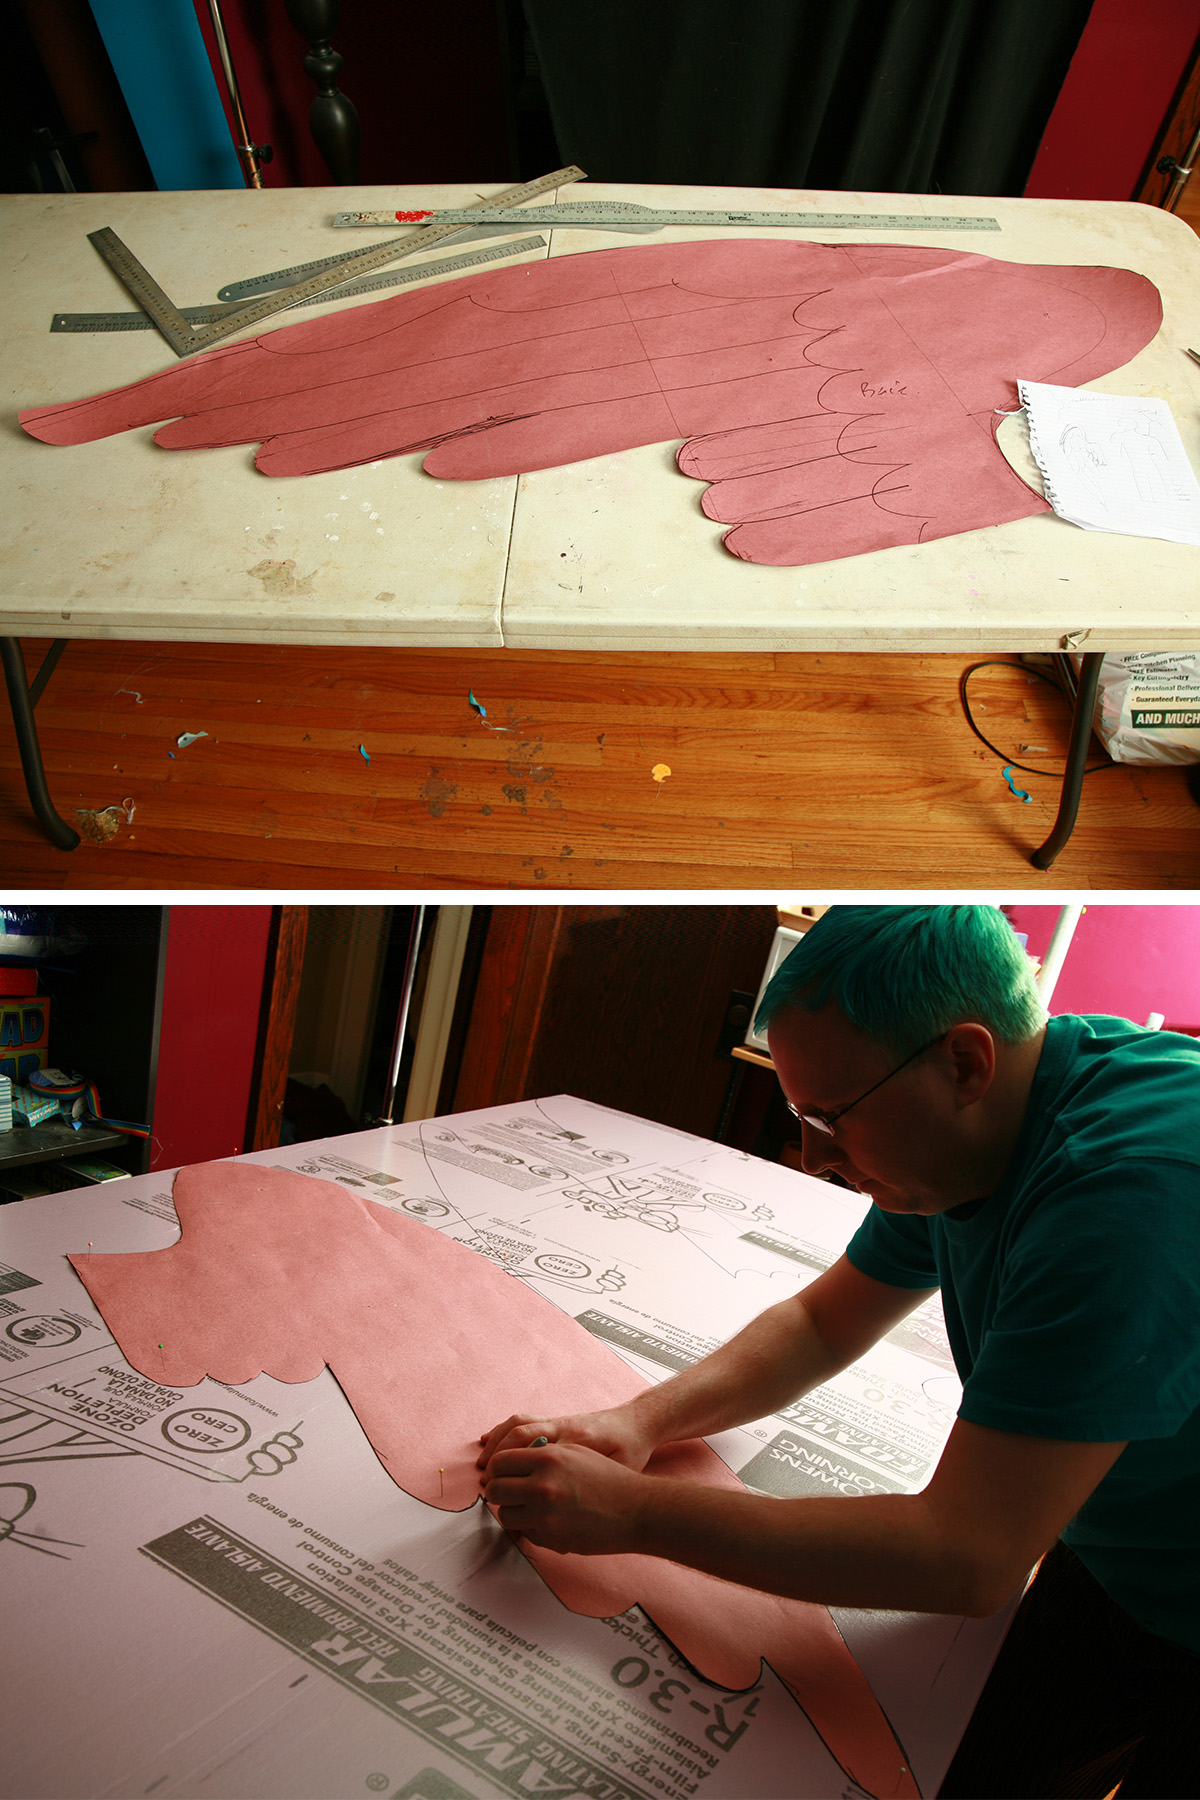 A large wing drawn on heavy pink paper, and a man using it as a pattern to cut pink foam insulation.